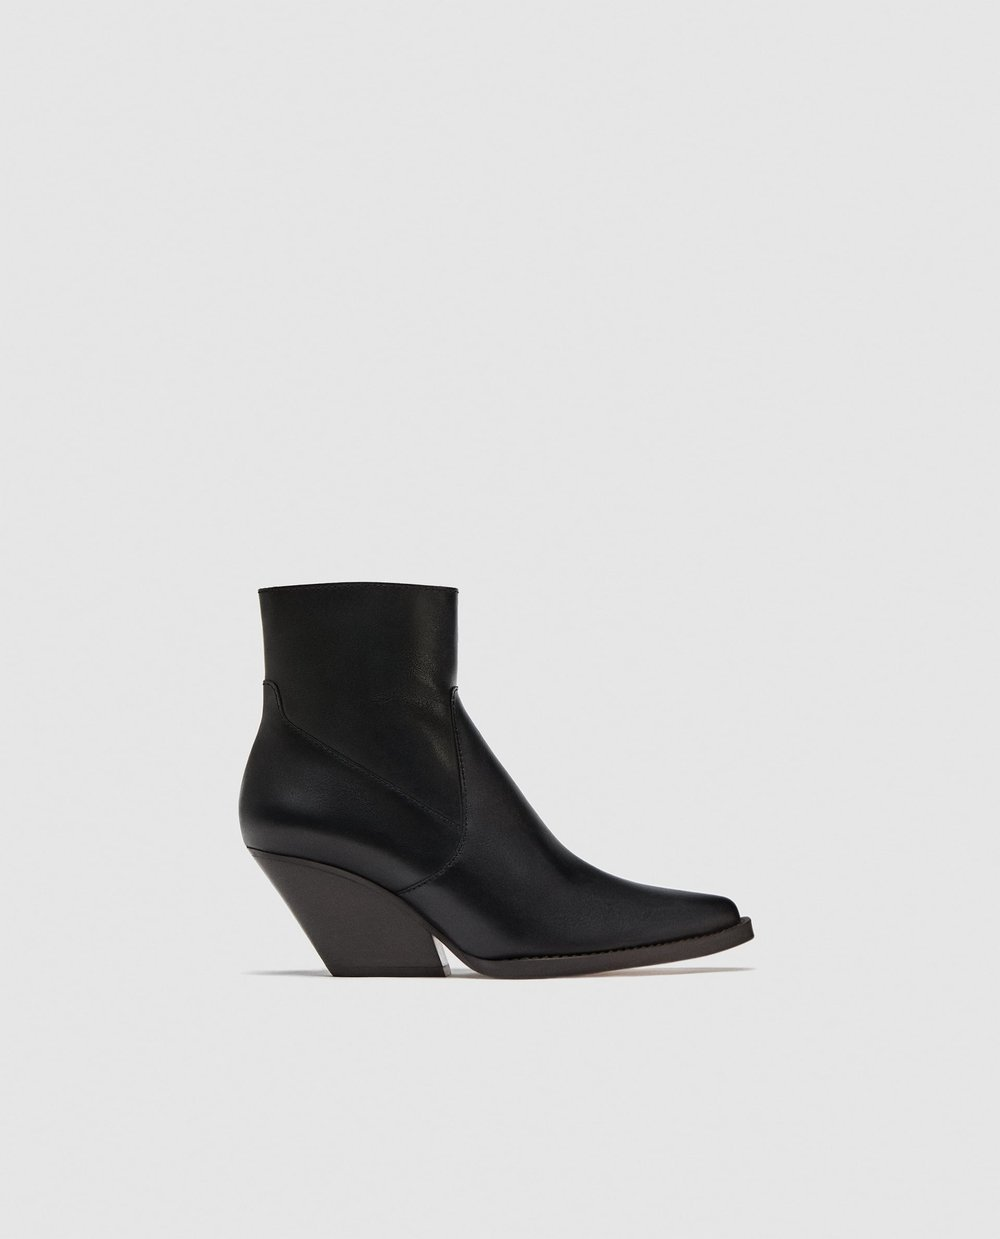 https://www.zara.com/ca/en/leather-cowboy-ankle-boots-p11123301.html?v1=6101661&v2=969009